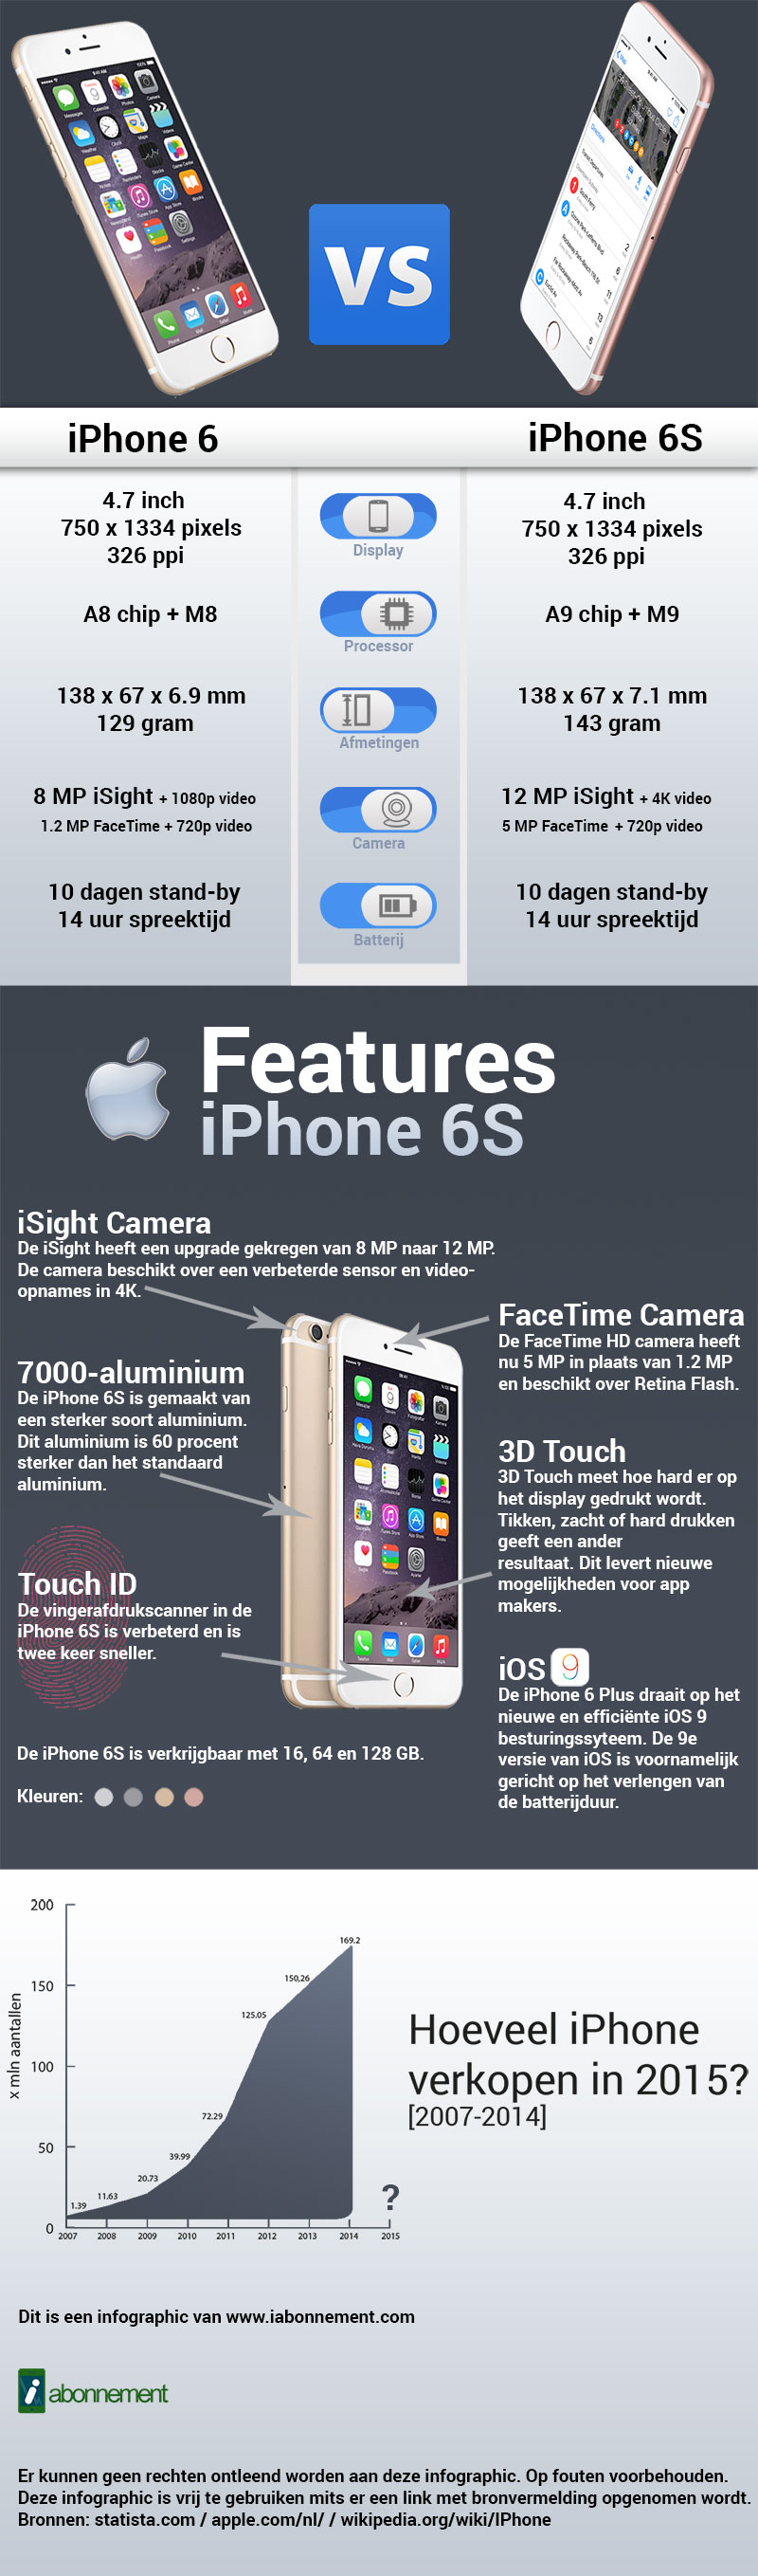 Infographic: iPhone 6 vs iPhone 6S